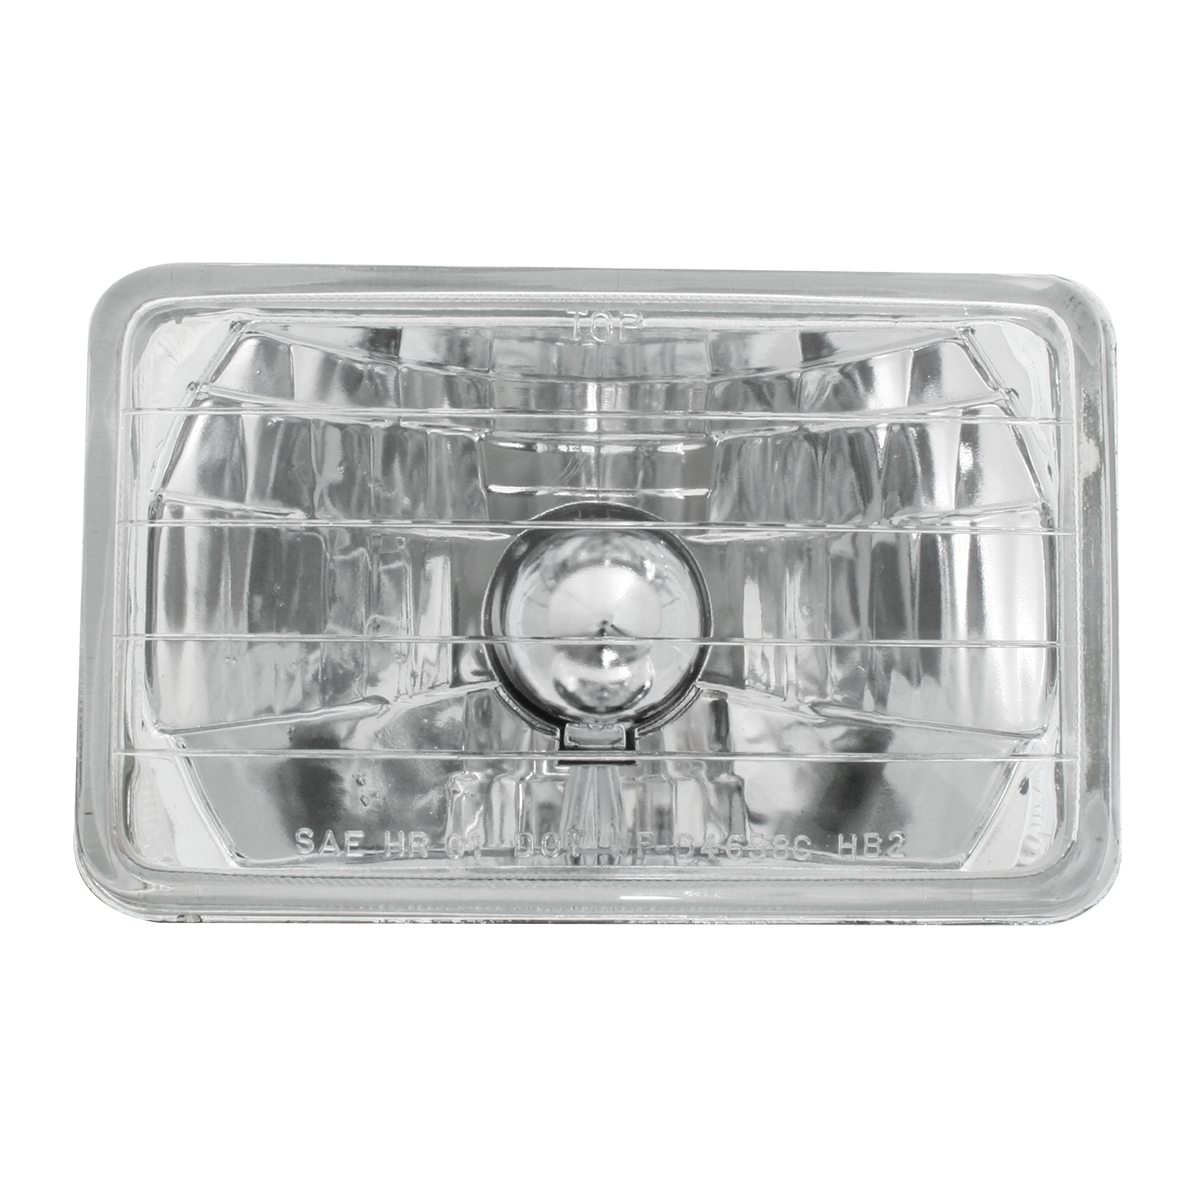 "#77400 (6.5"" x 4.17"") Rectangular Headlamp with #H4 Halogen Bulb"